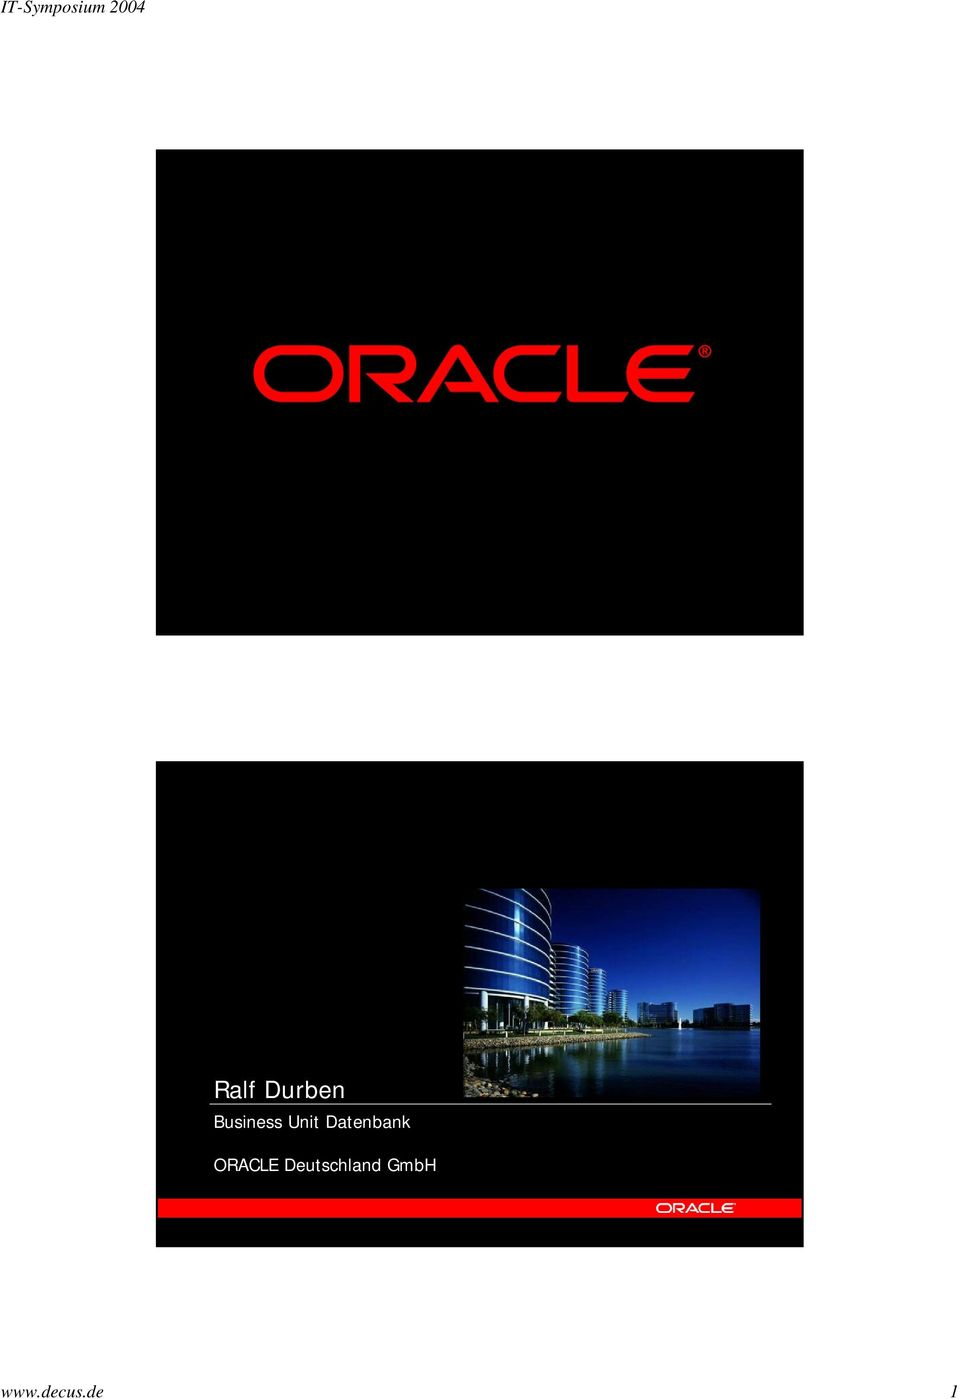 Datenbank ORACLE